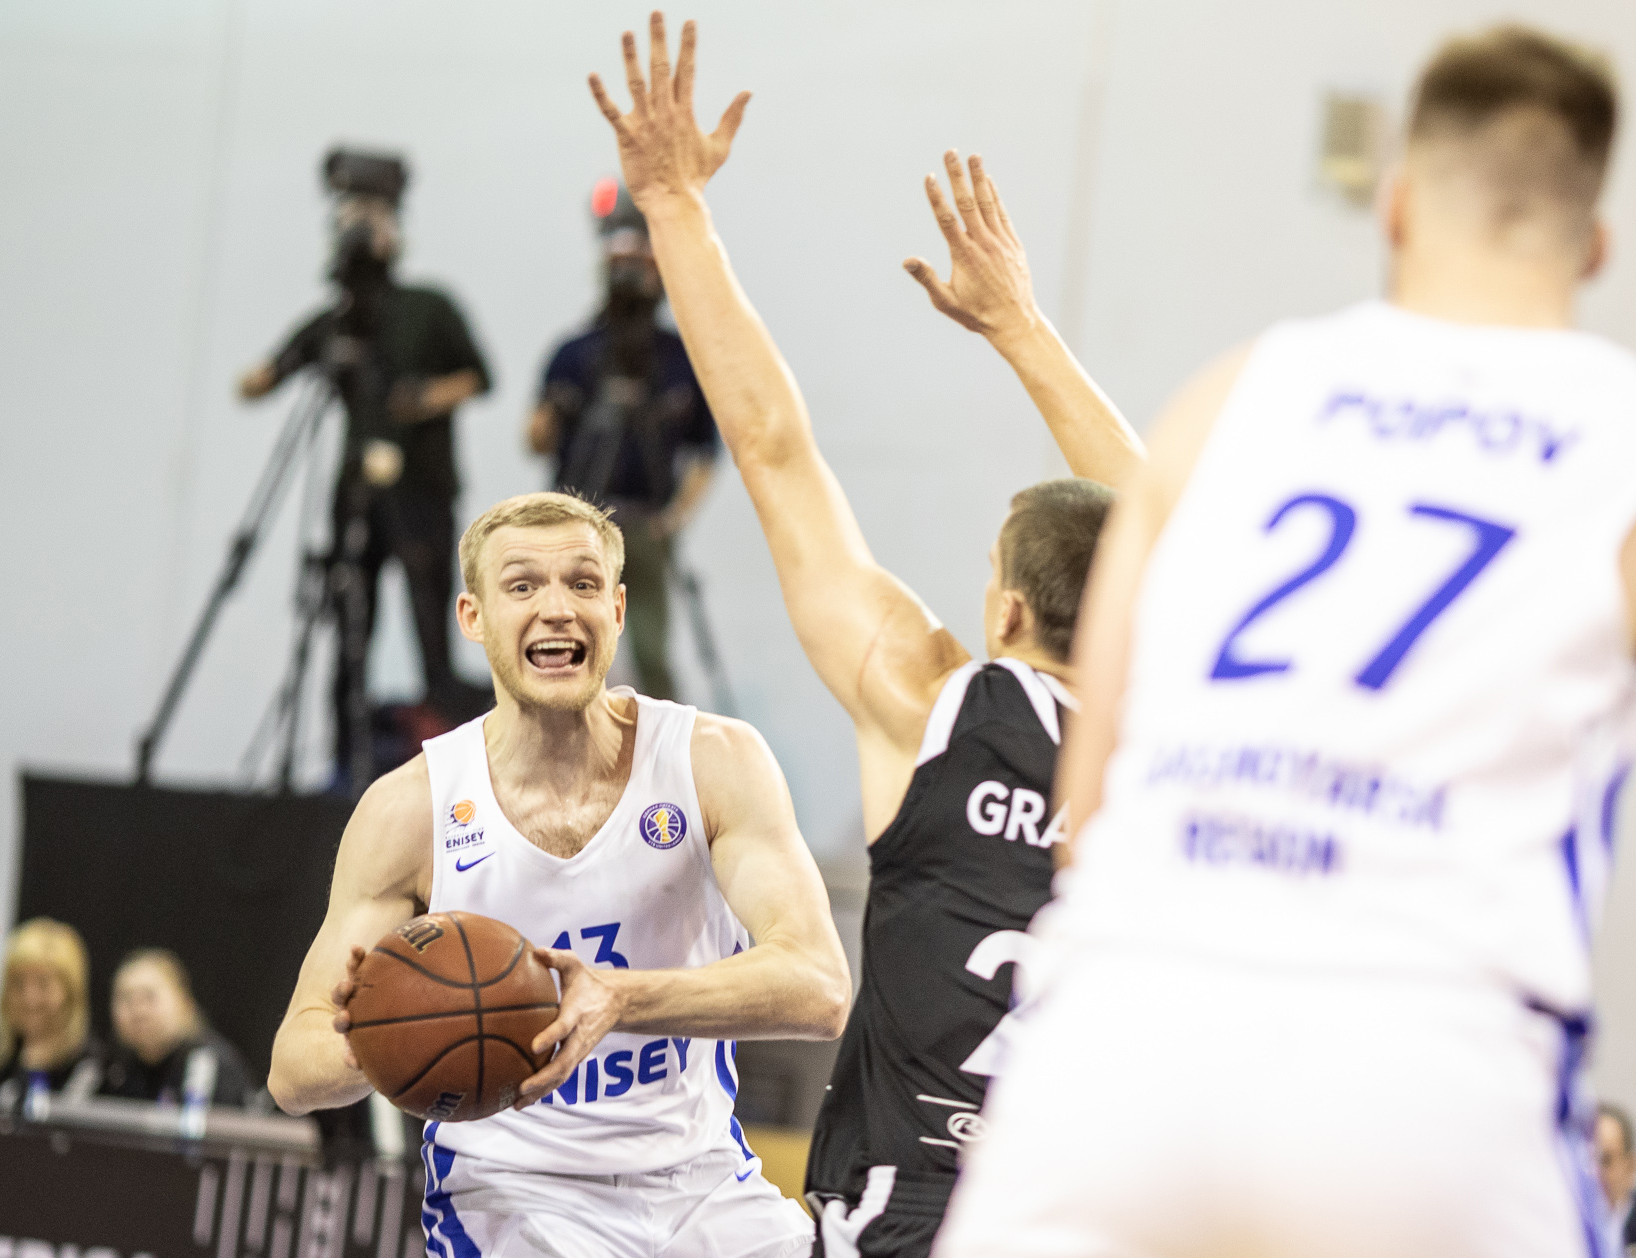 Enisey Slips By VEF, Now Tied For 9th